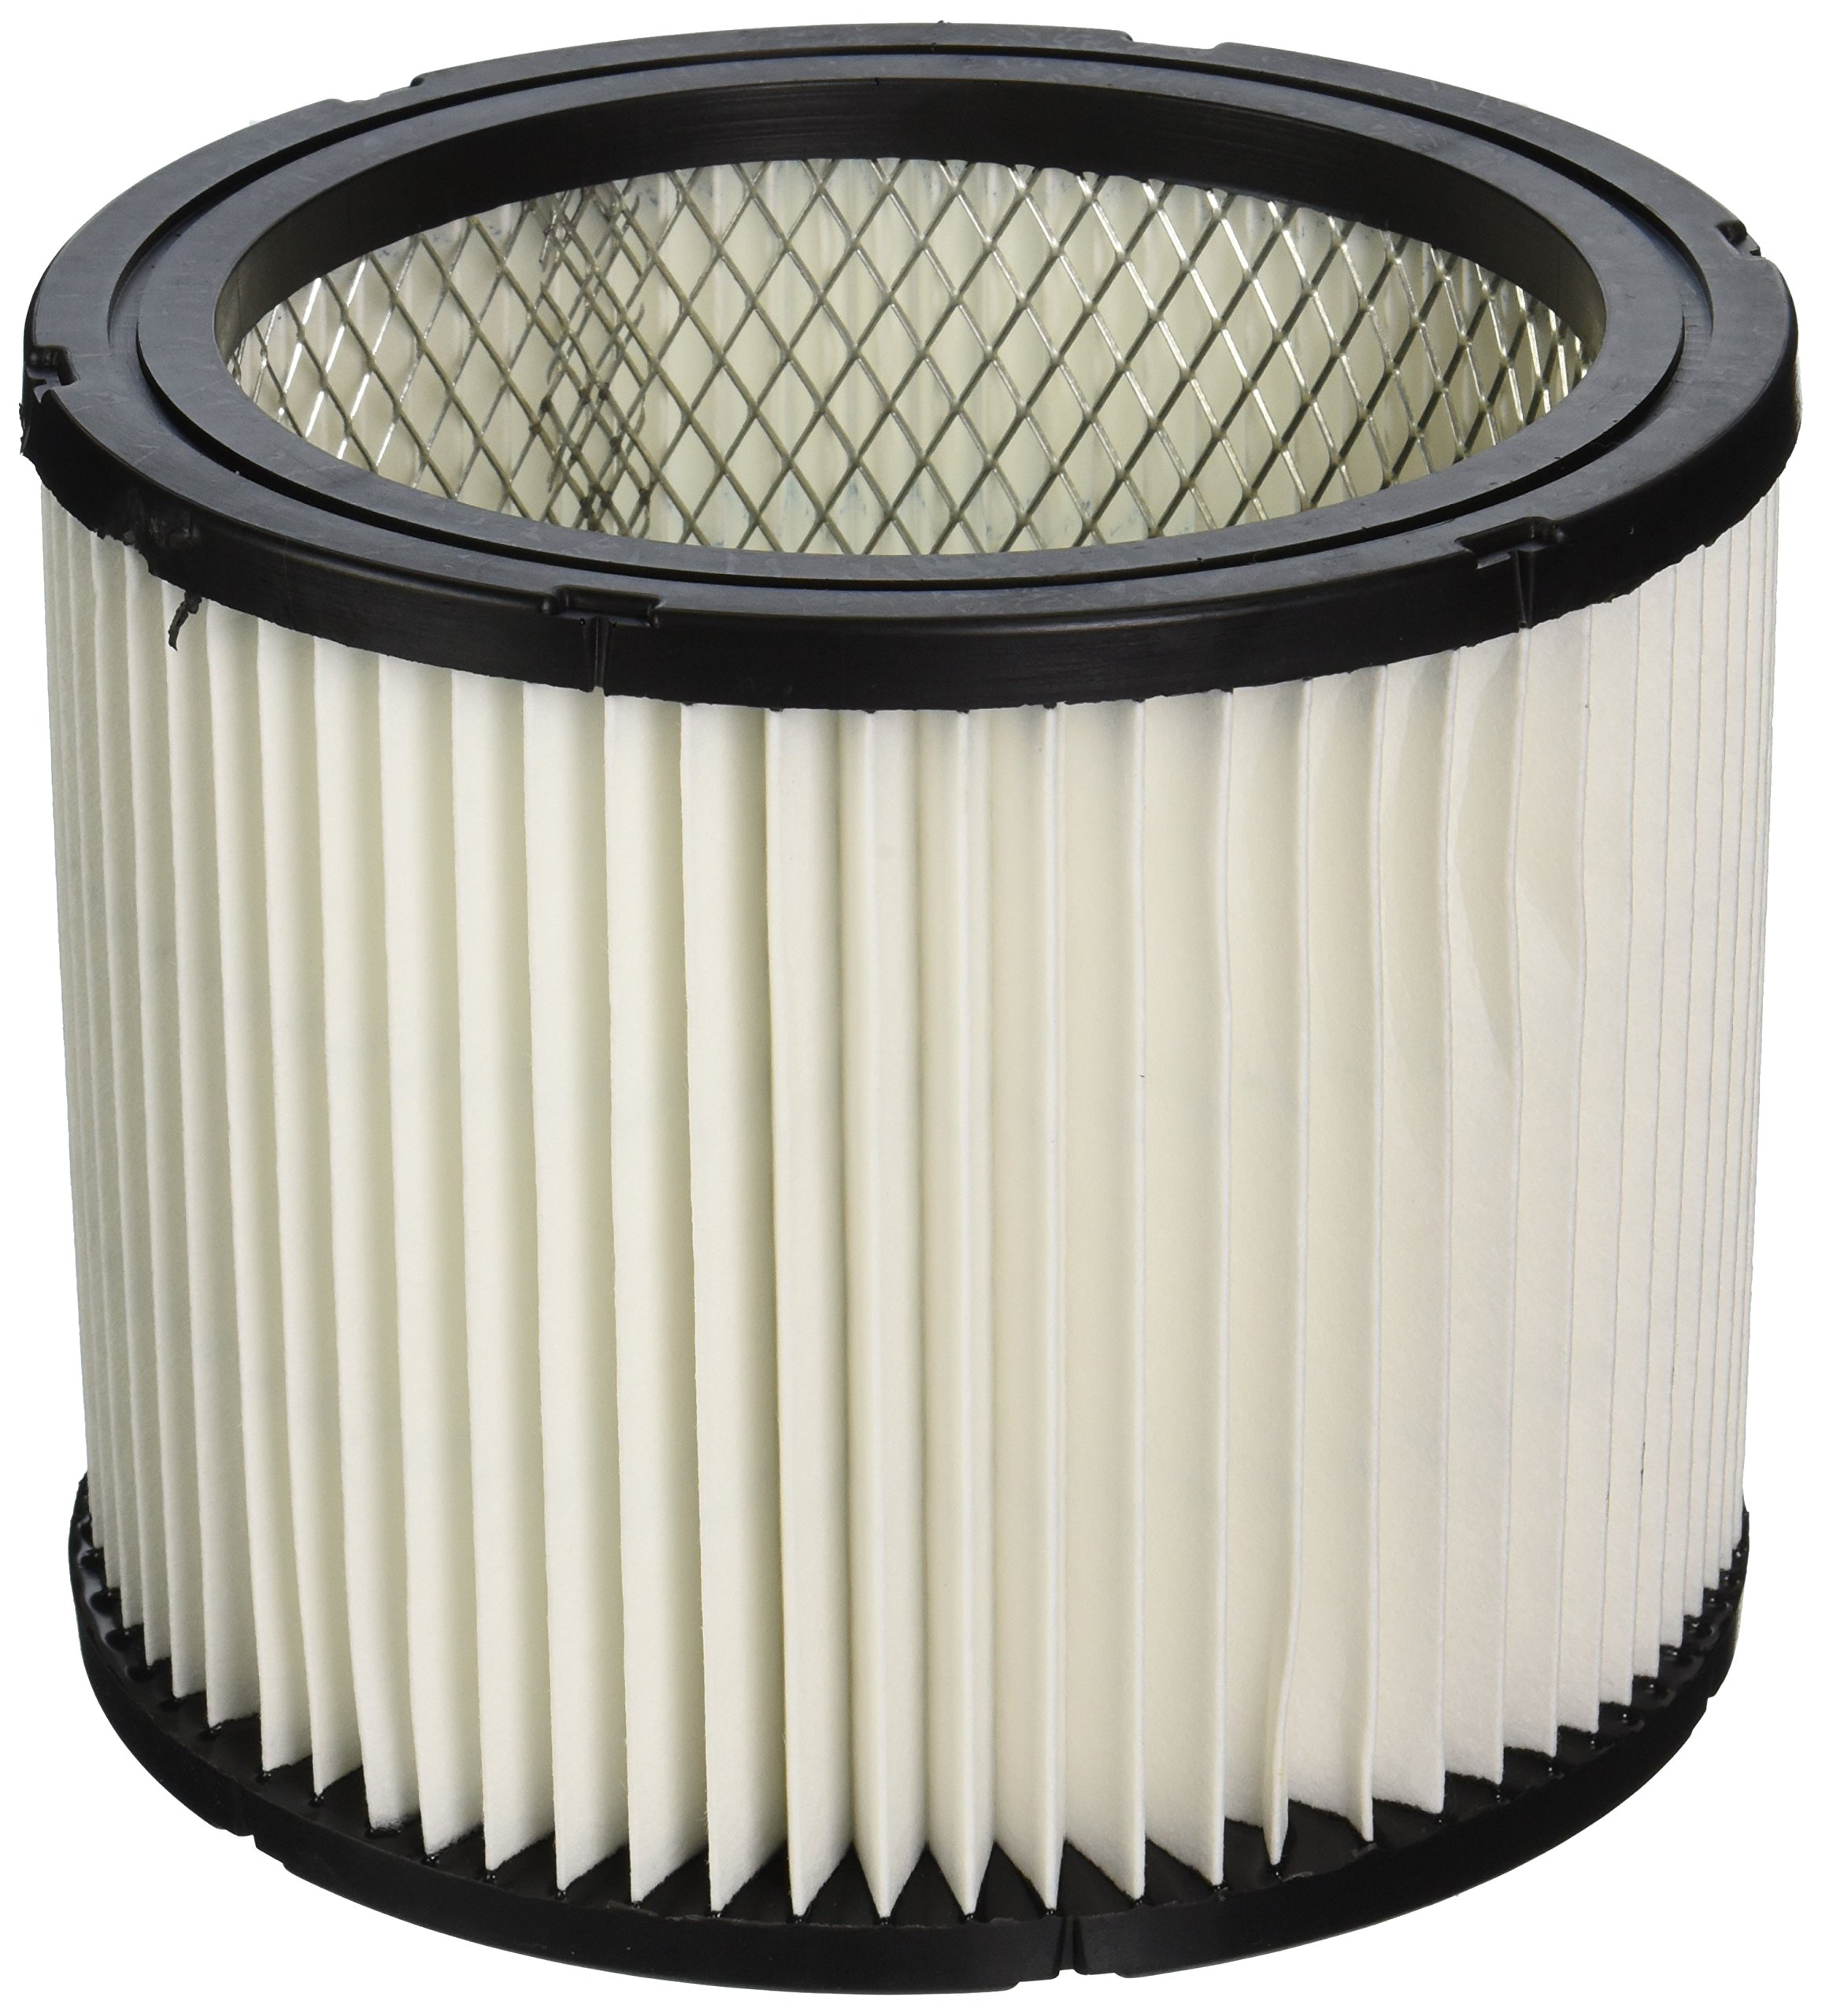 Hoover 43611009 Filter, Round Pleated Wet/Dry S6631/S6635/S6641 by Hoover